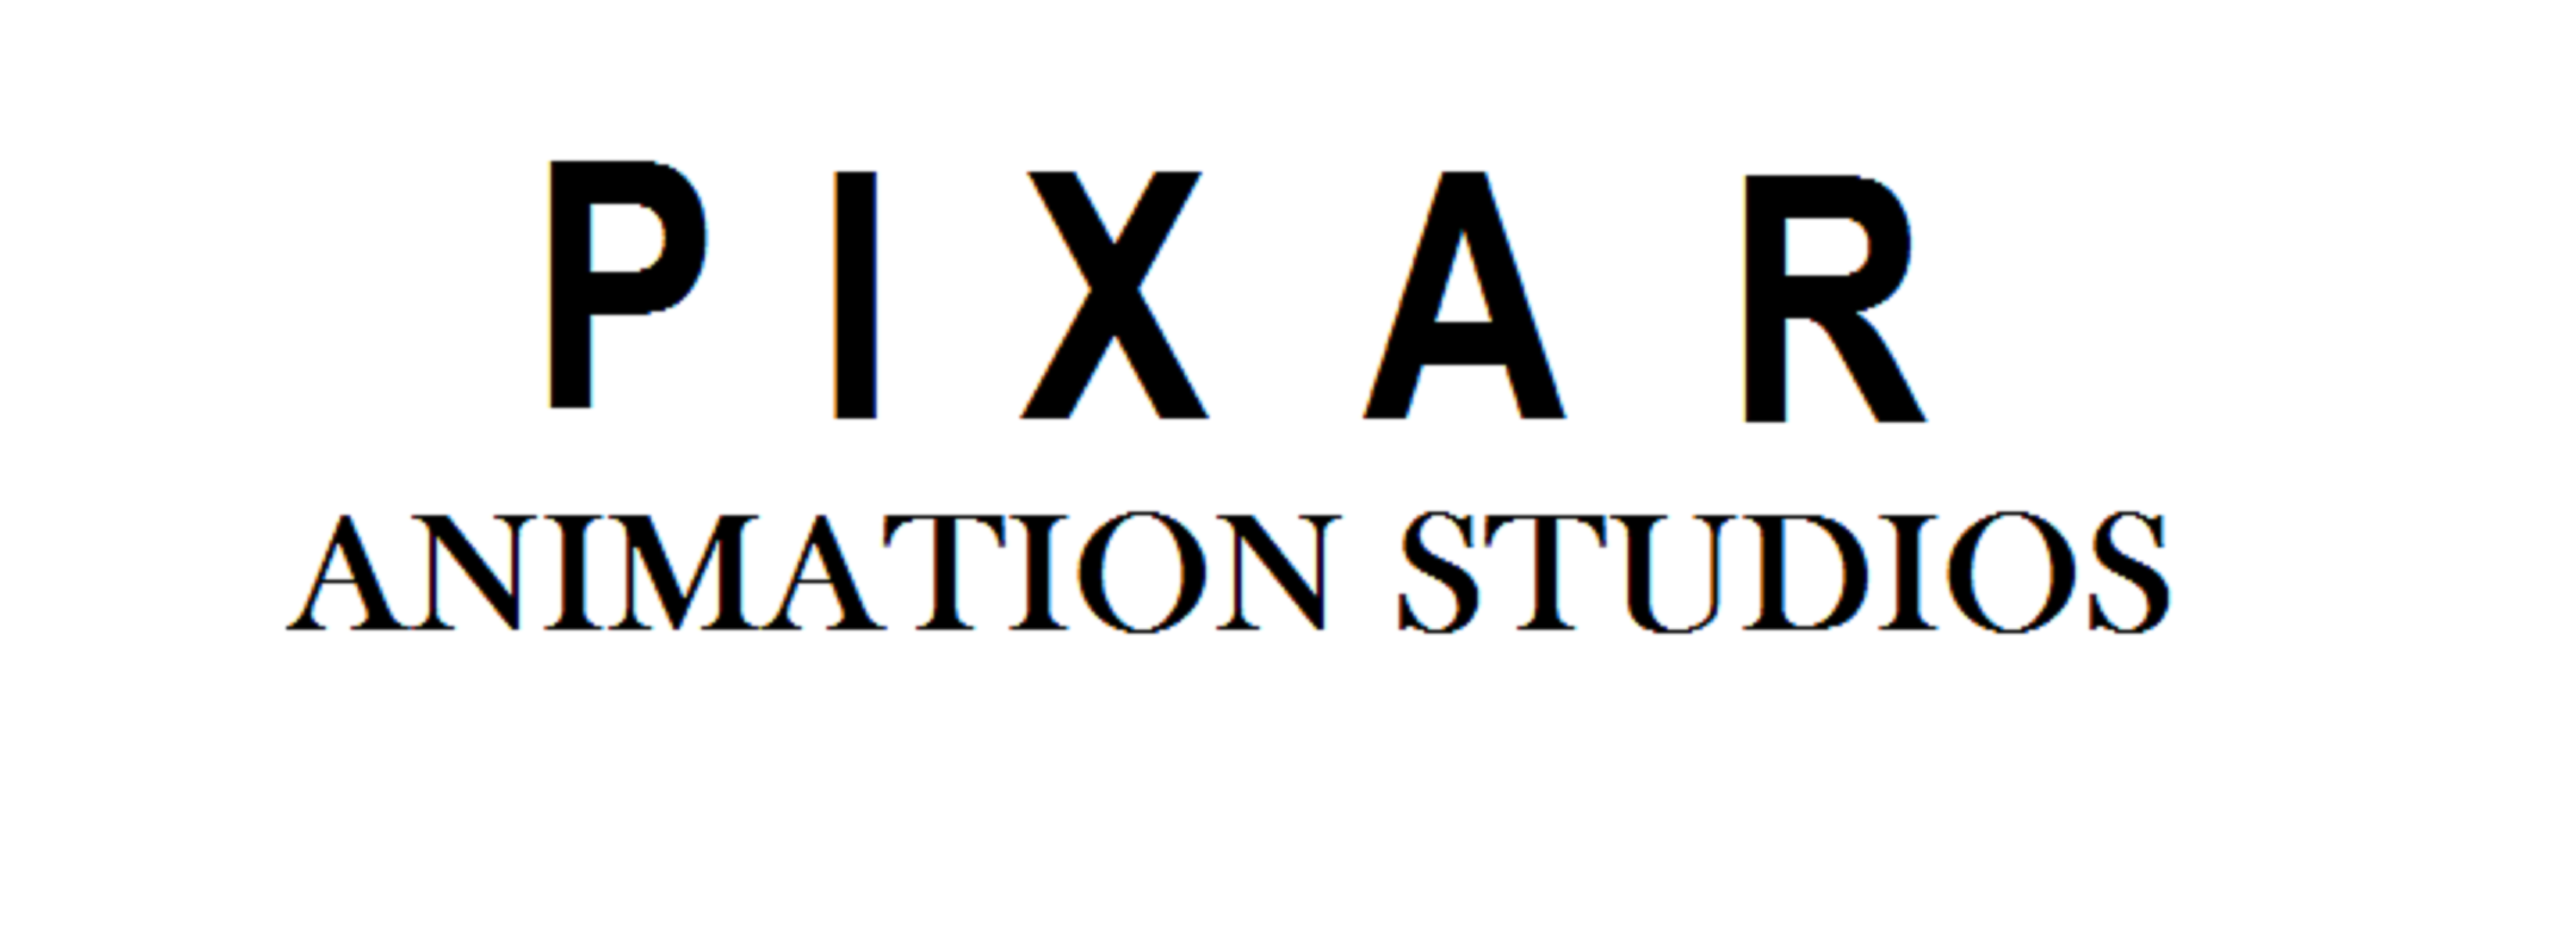 the gallery for gt pixar movie logos